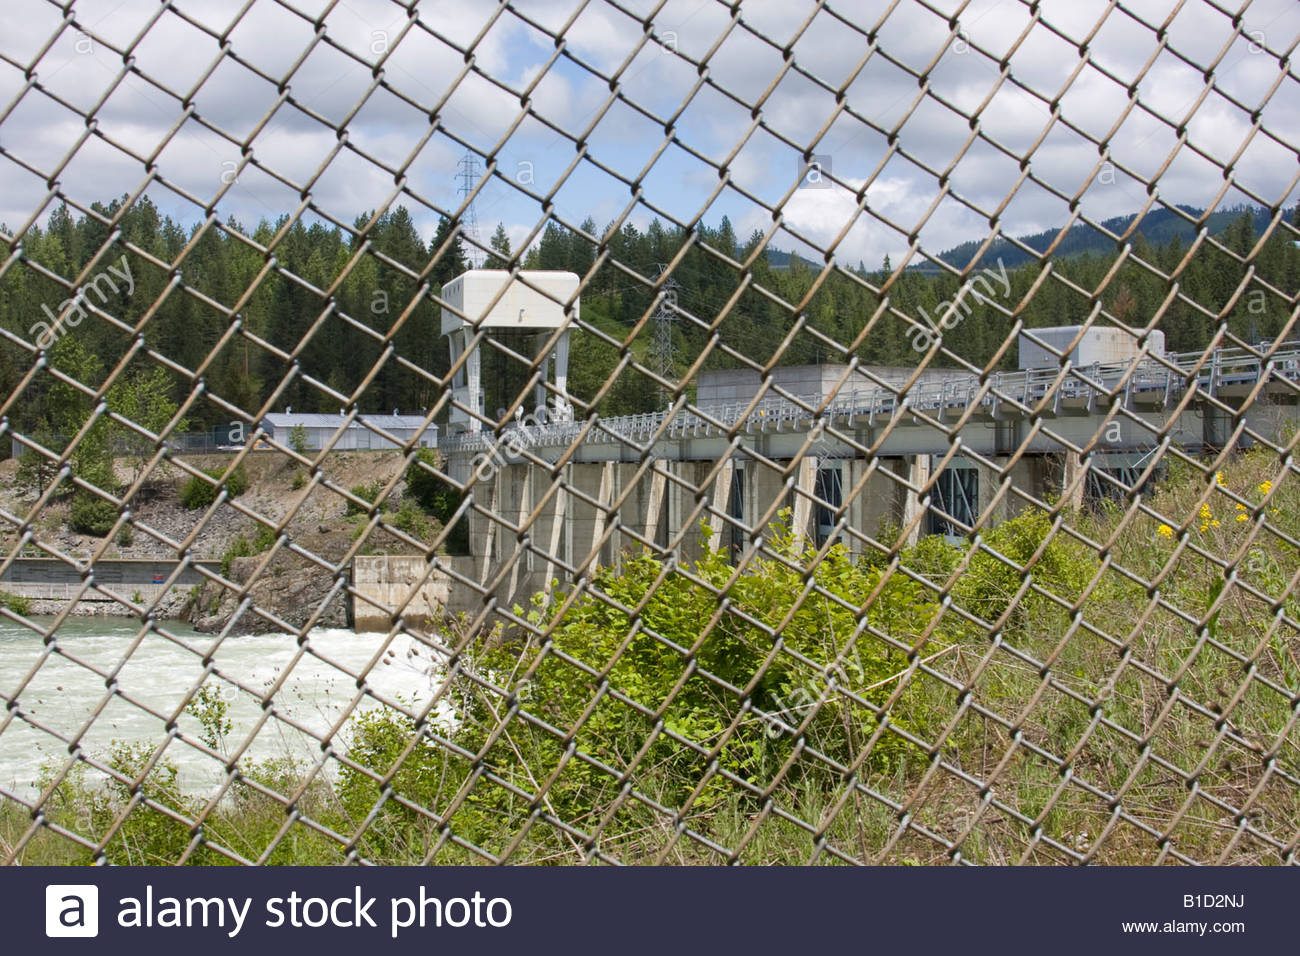 The Albeni Falls Dam seen from the south side of the Pend Oreille River through a chain link fence. North Idaho, - Stock Image